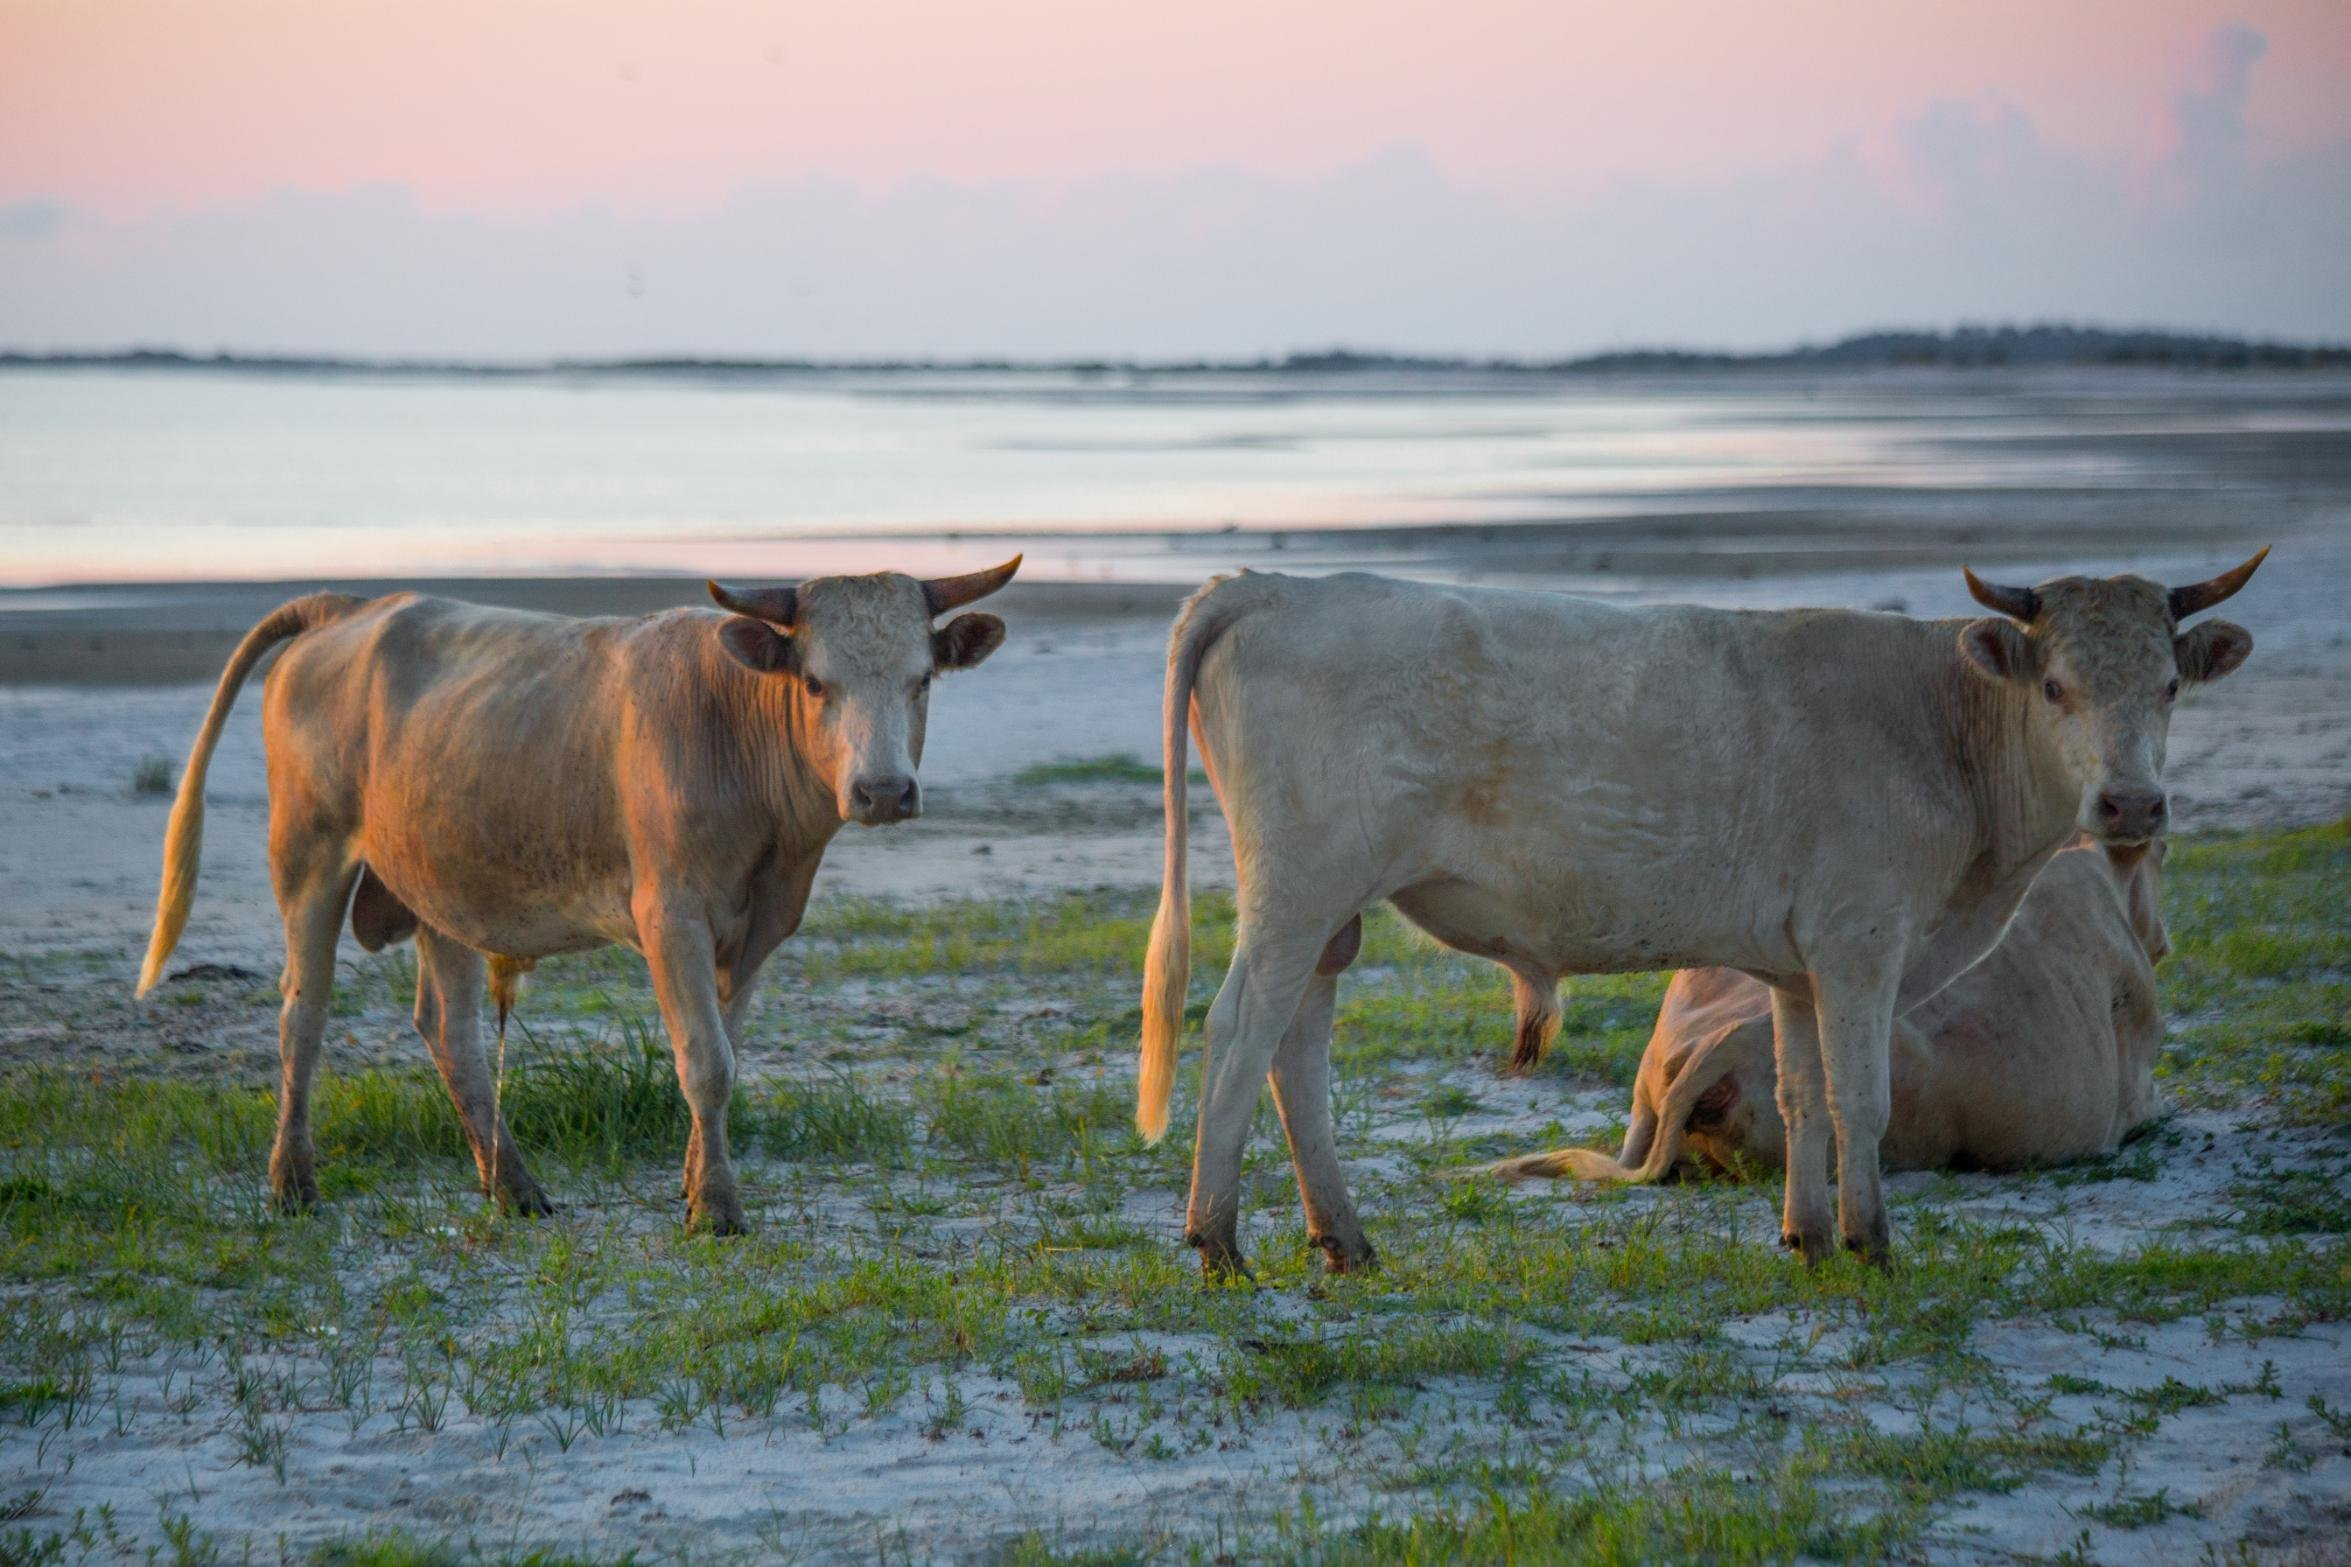 Cows swept away by floodwaters during Hurricane Dorian were found alive four miles away on an island